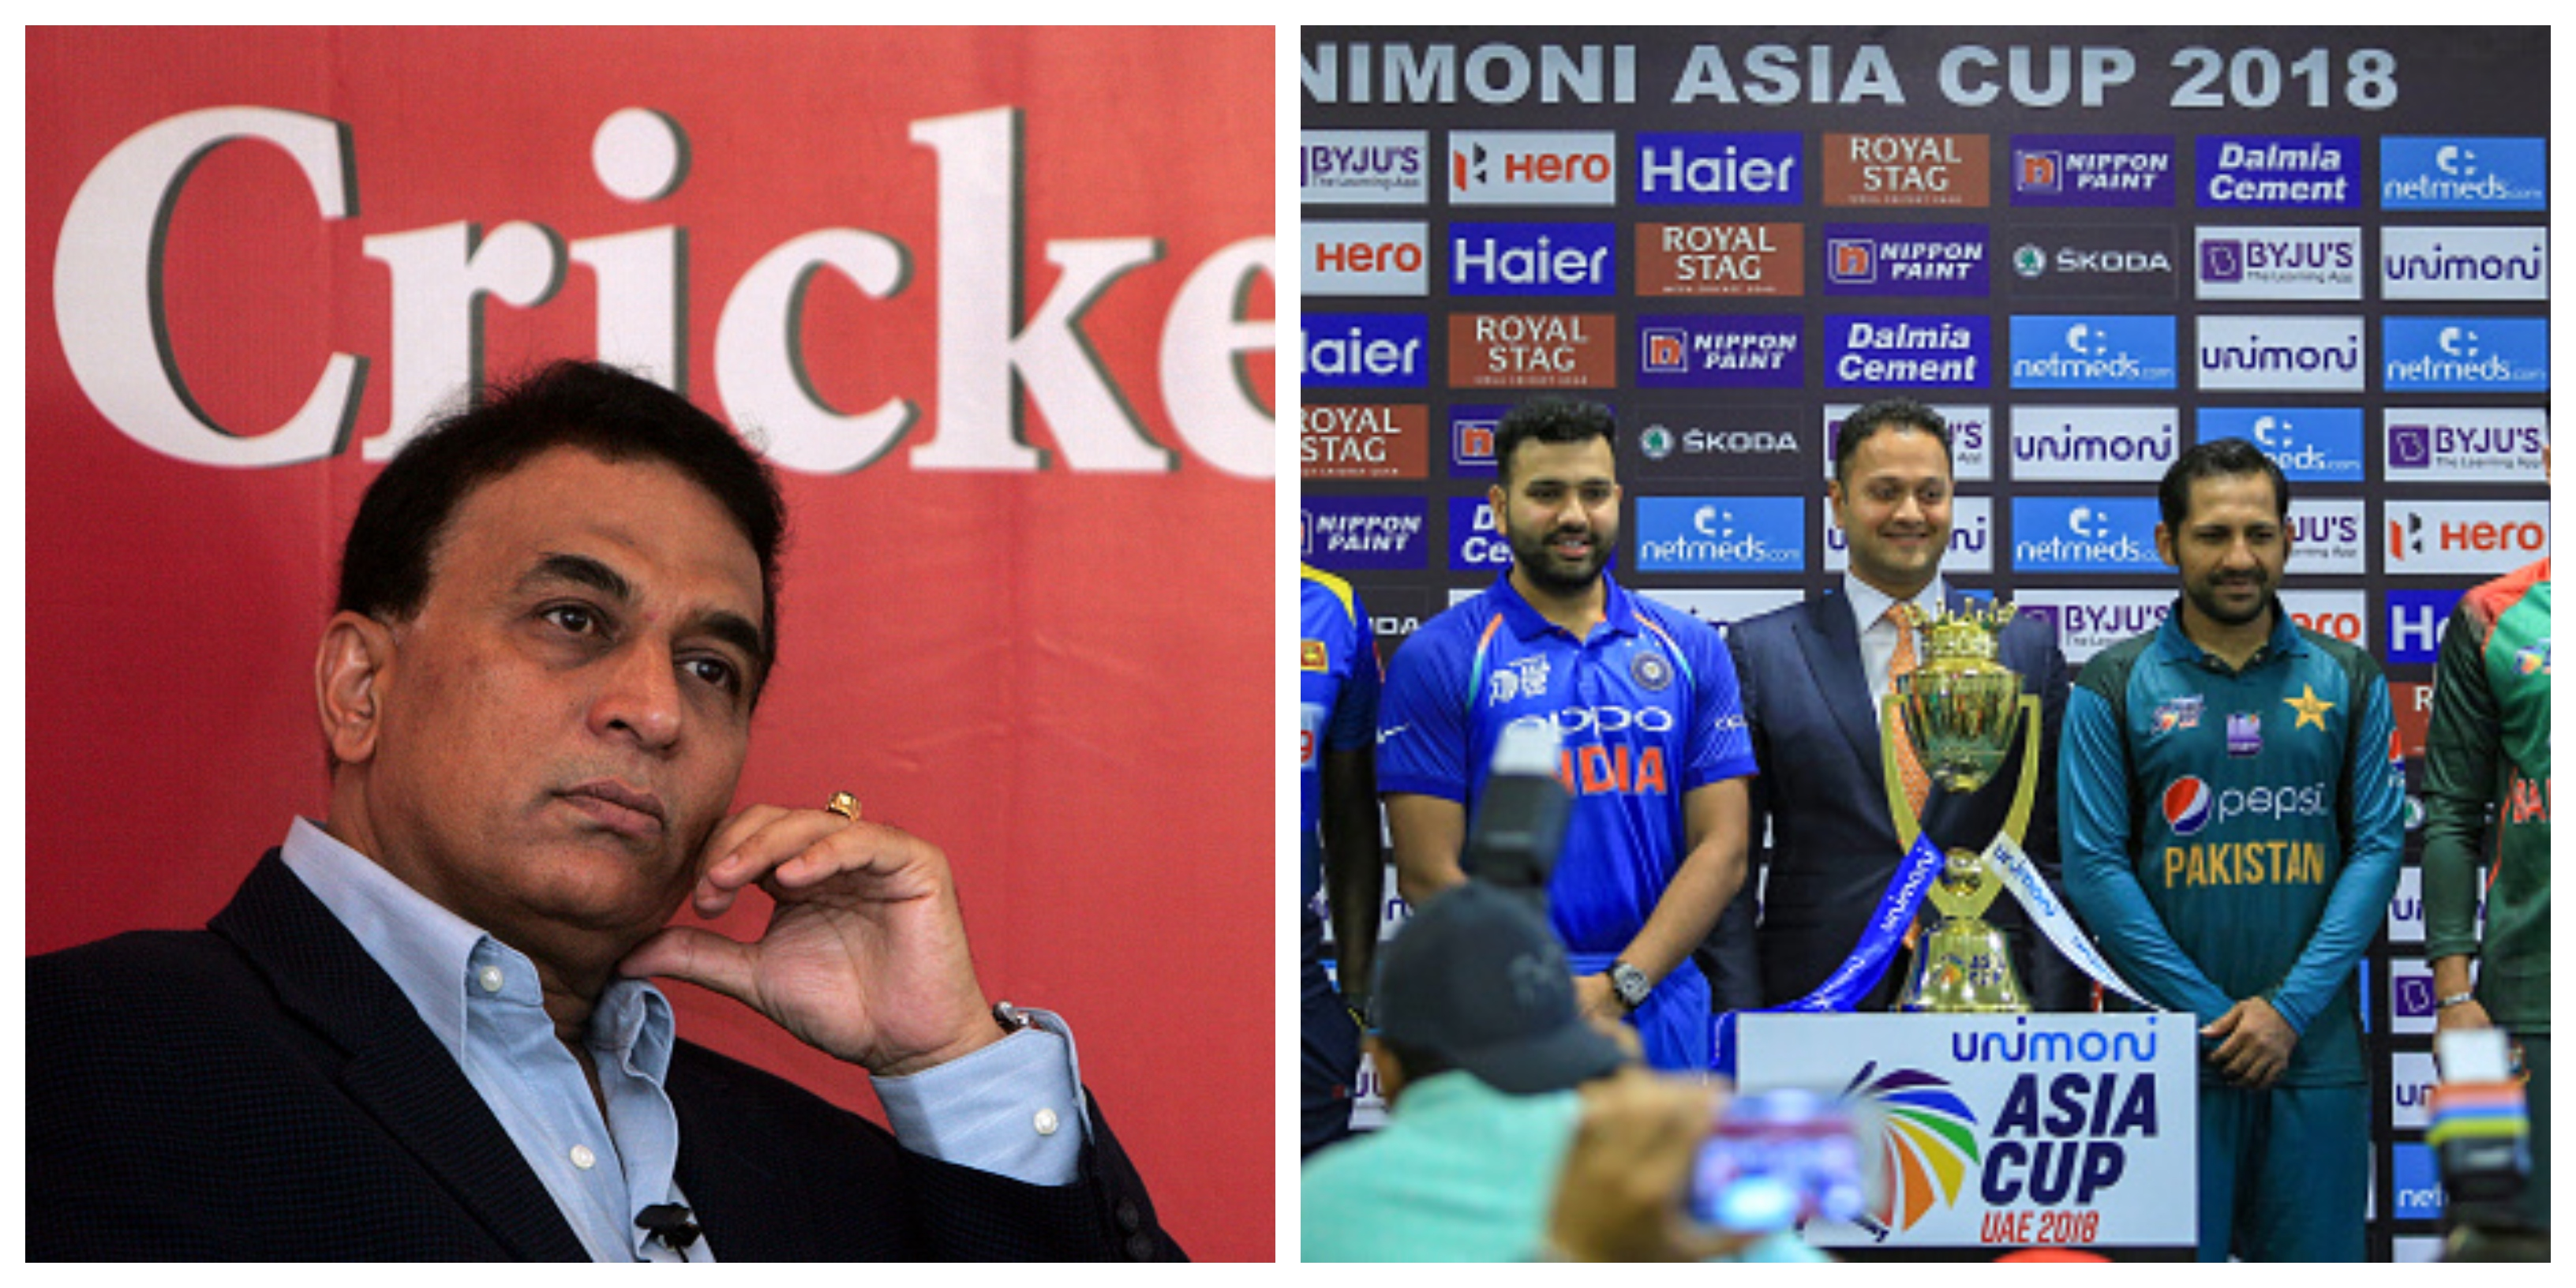 Sunil Gavaskar picked his favourites for the Asia Cup. | Getty